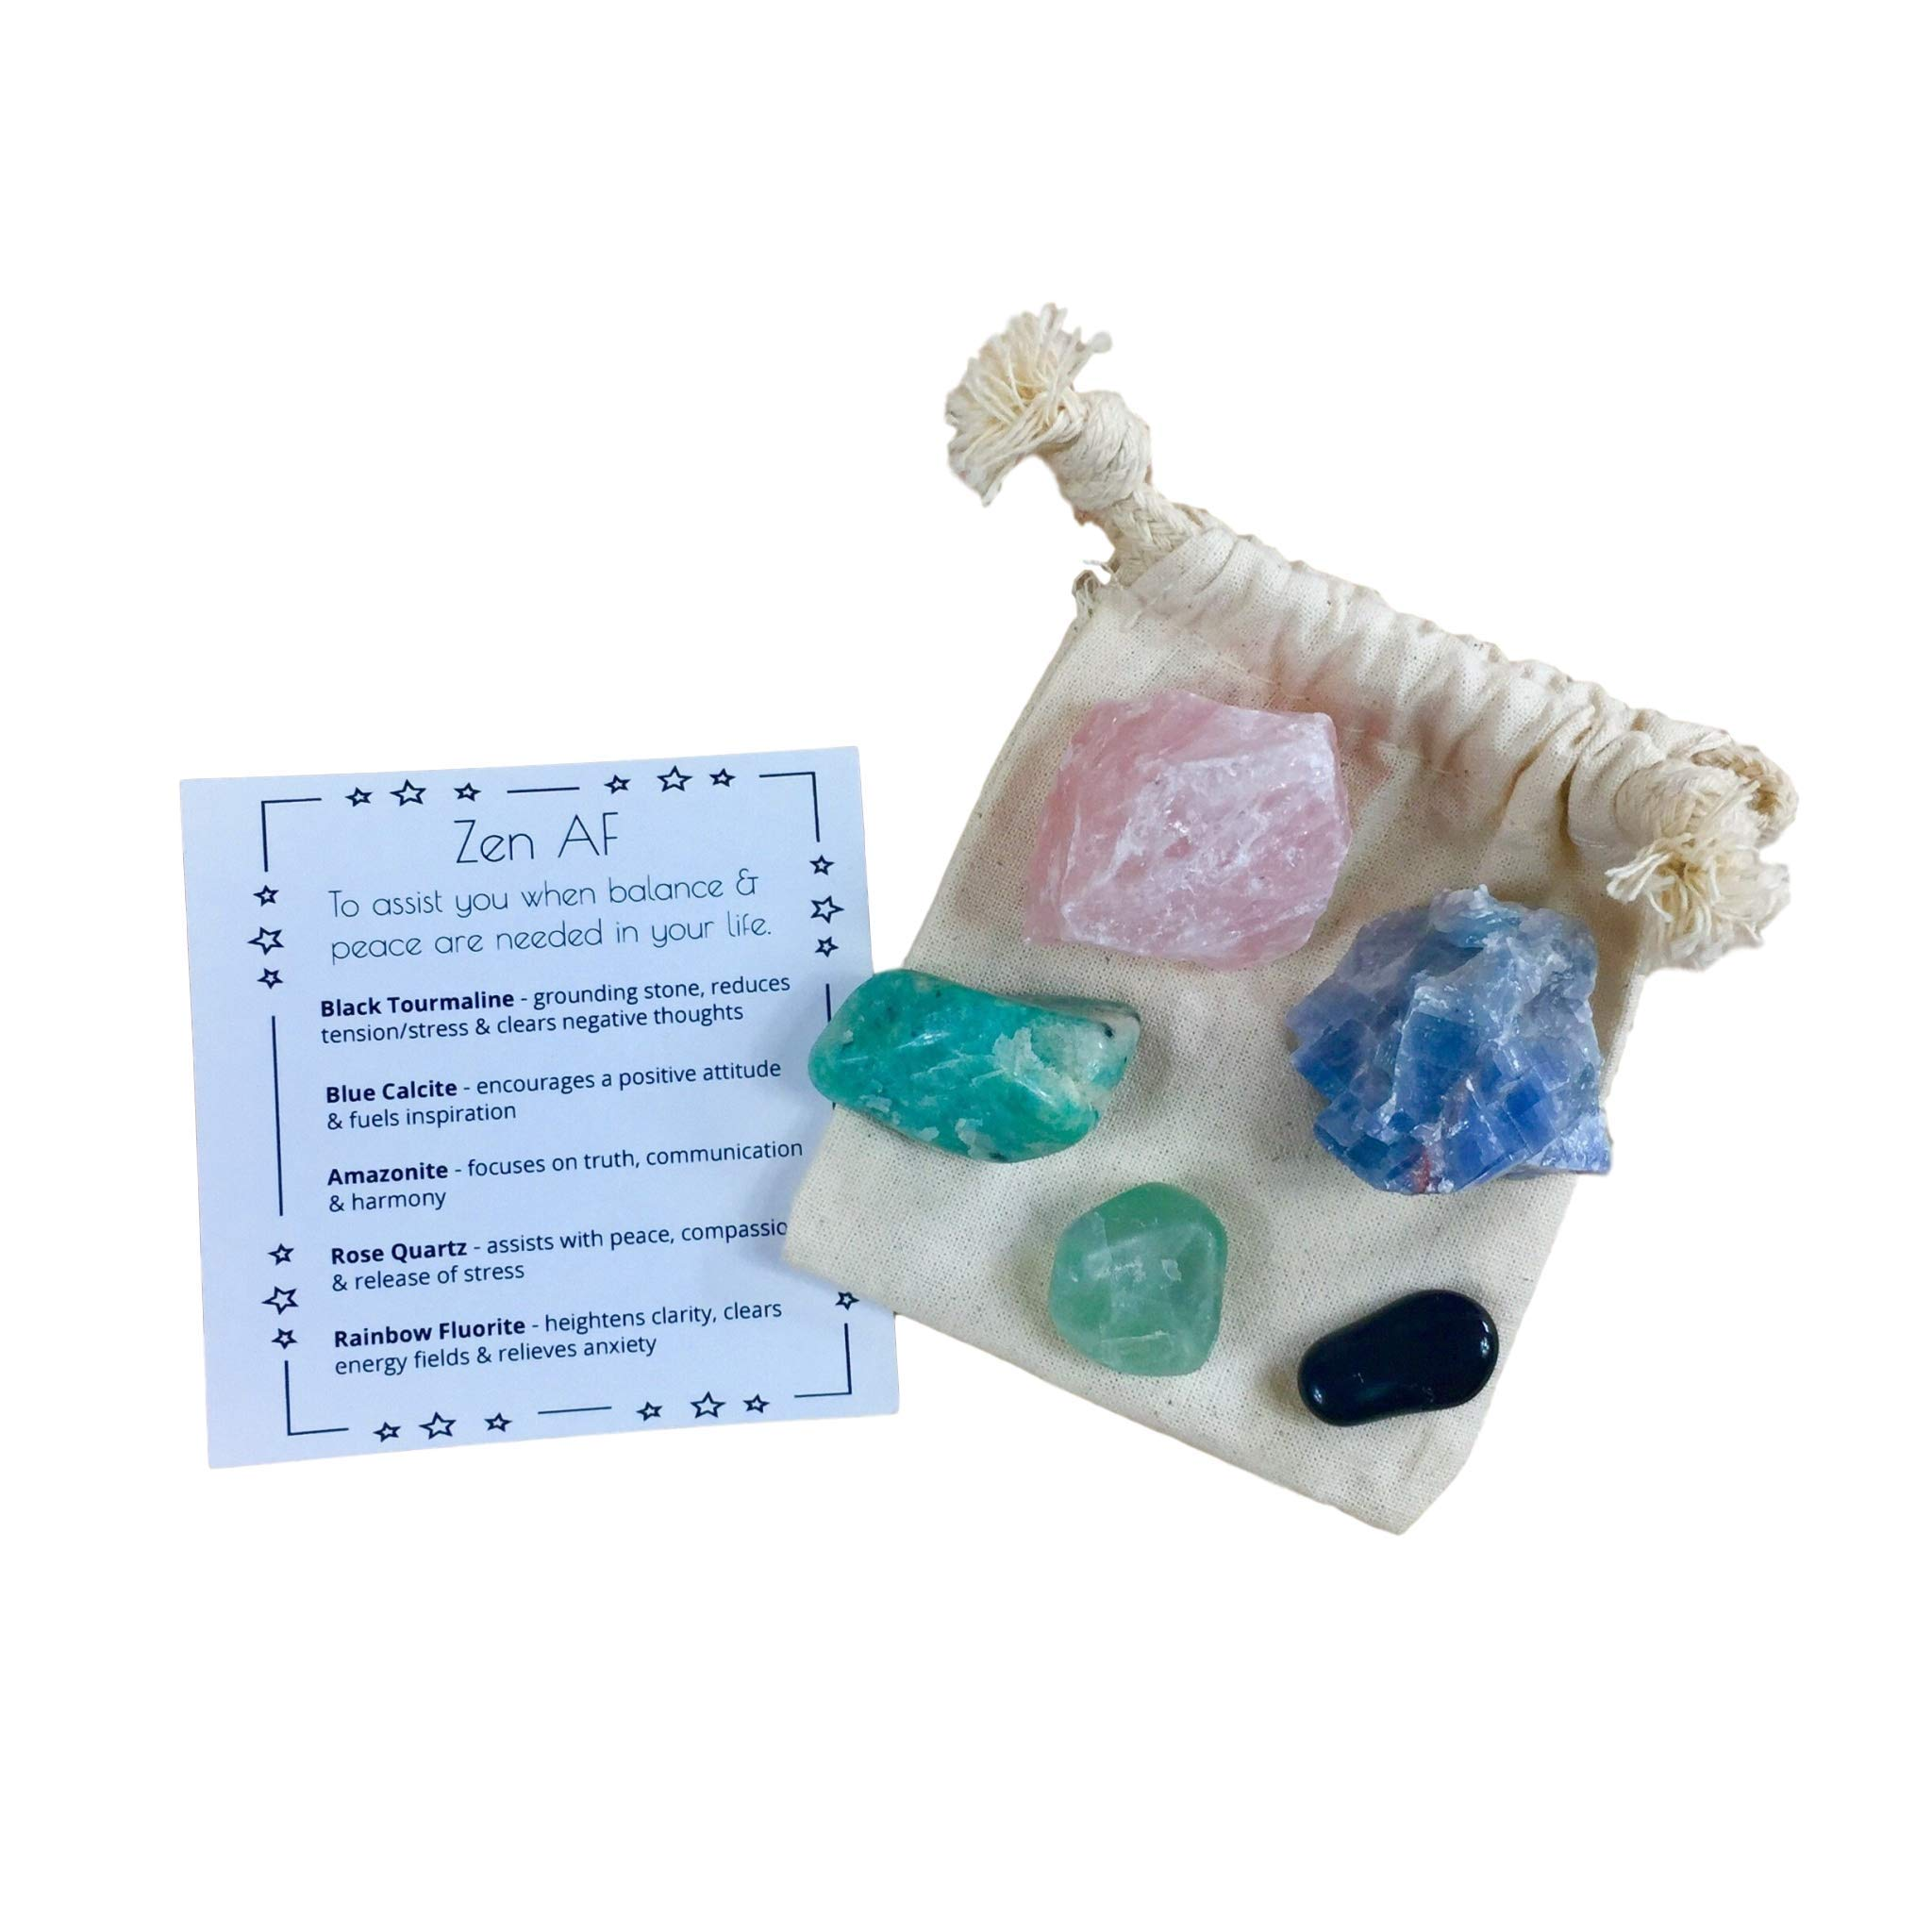 Crystal Stone Set - for Zen, Calmness, Meditation & Relaxing - Tumbled Gemstone Set/Thinking of You, Self Love, Self Care, Work Gift